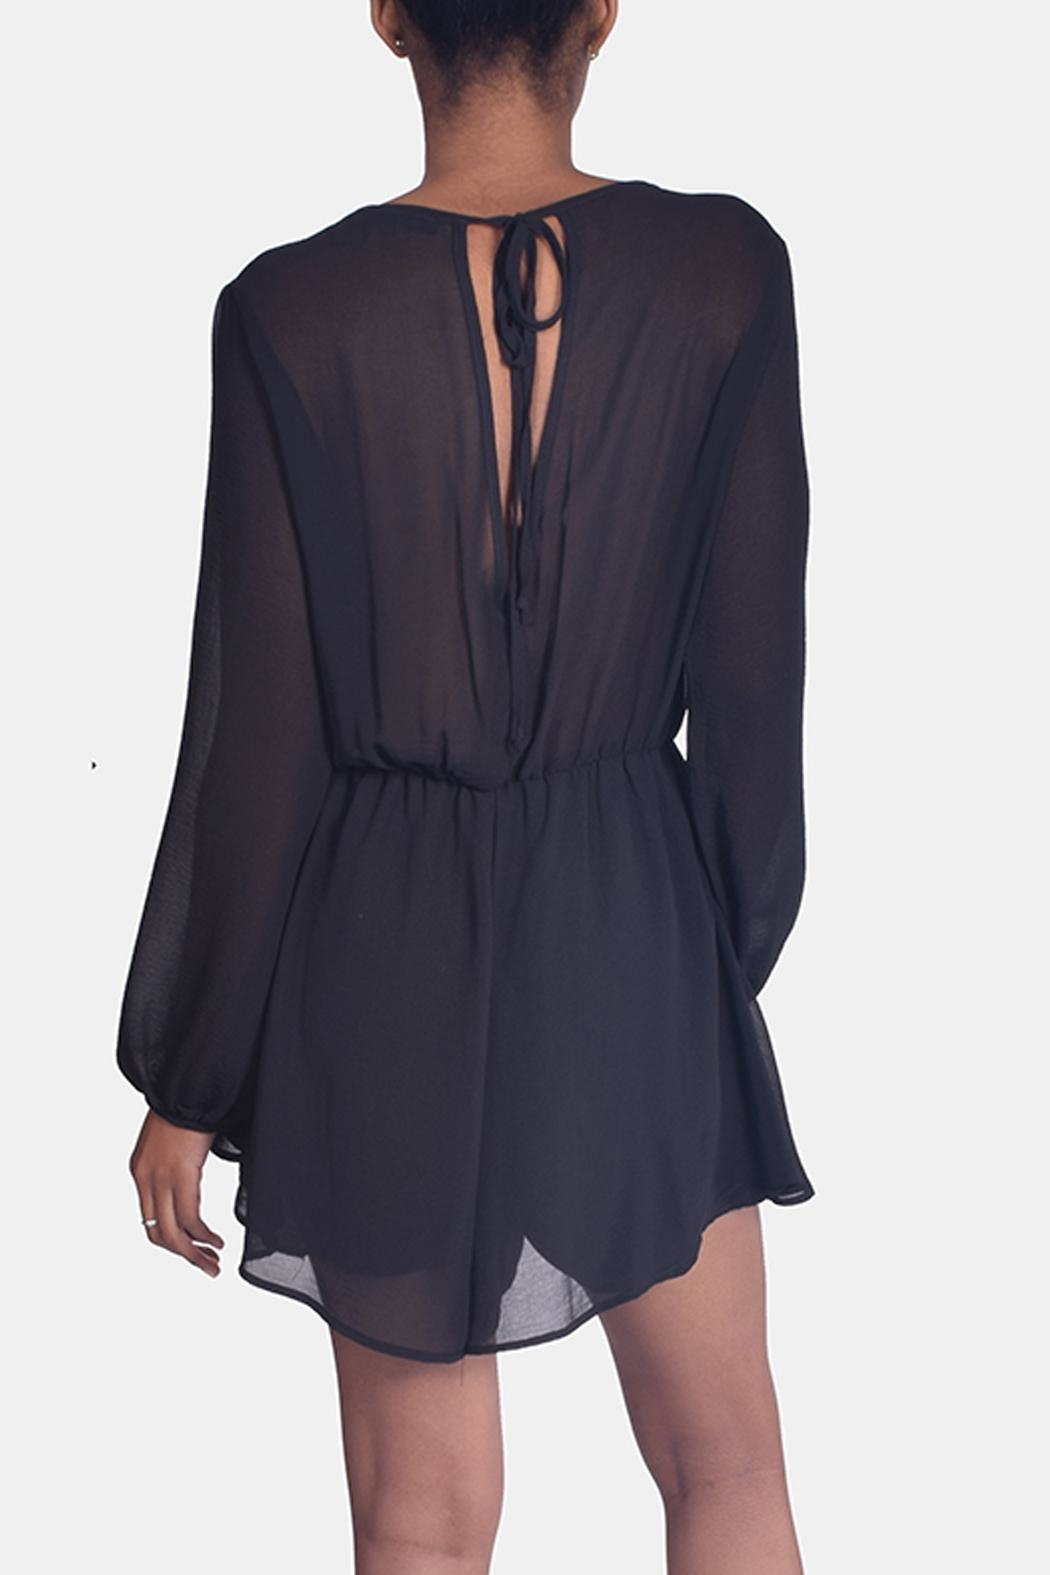 Final Touch Black Chiffon Romper - Back Cropped Image